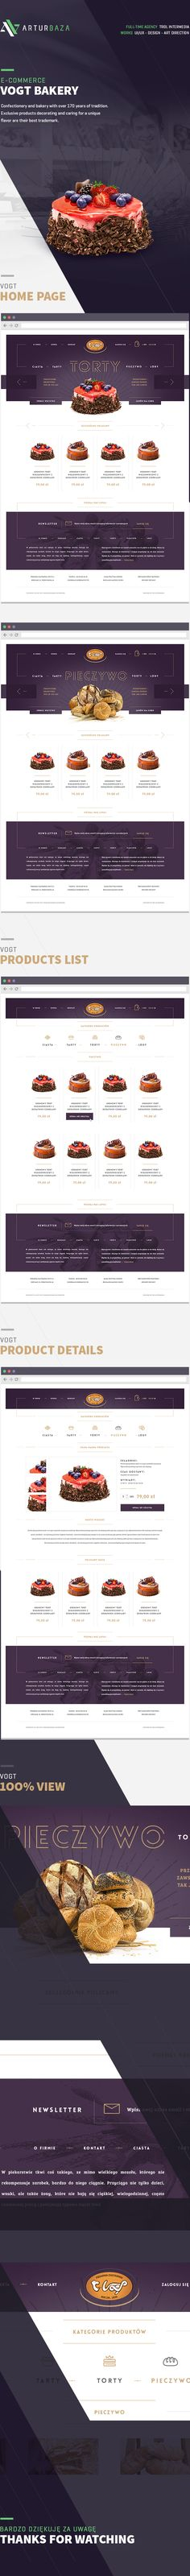 VOGT Bakery e-commerce on Web Design Served